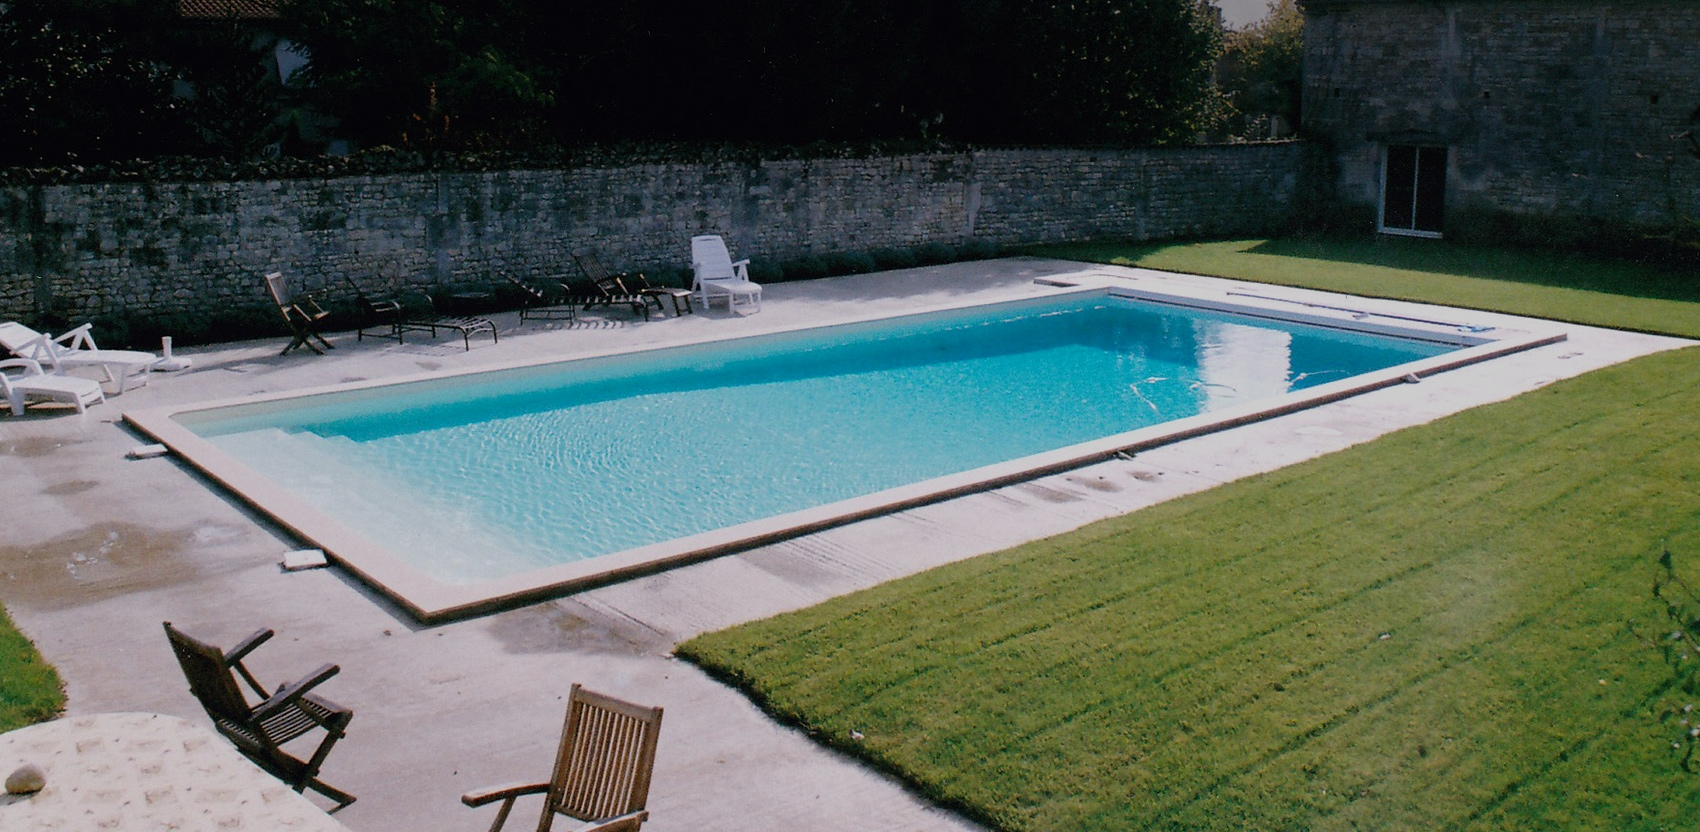 Constructeur de piscines en charente 16 r novation et for Construction piscine 16